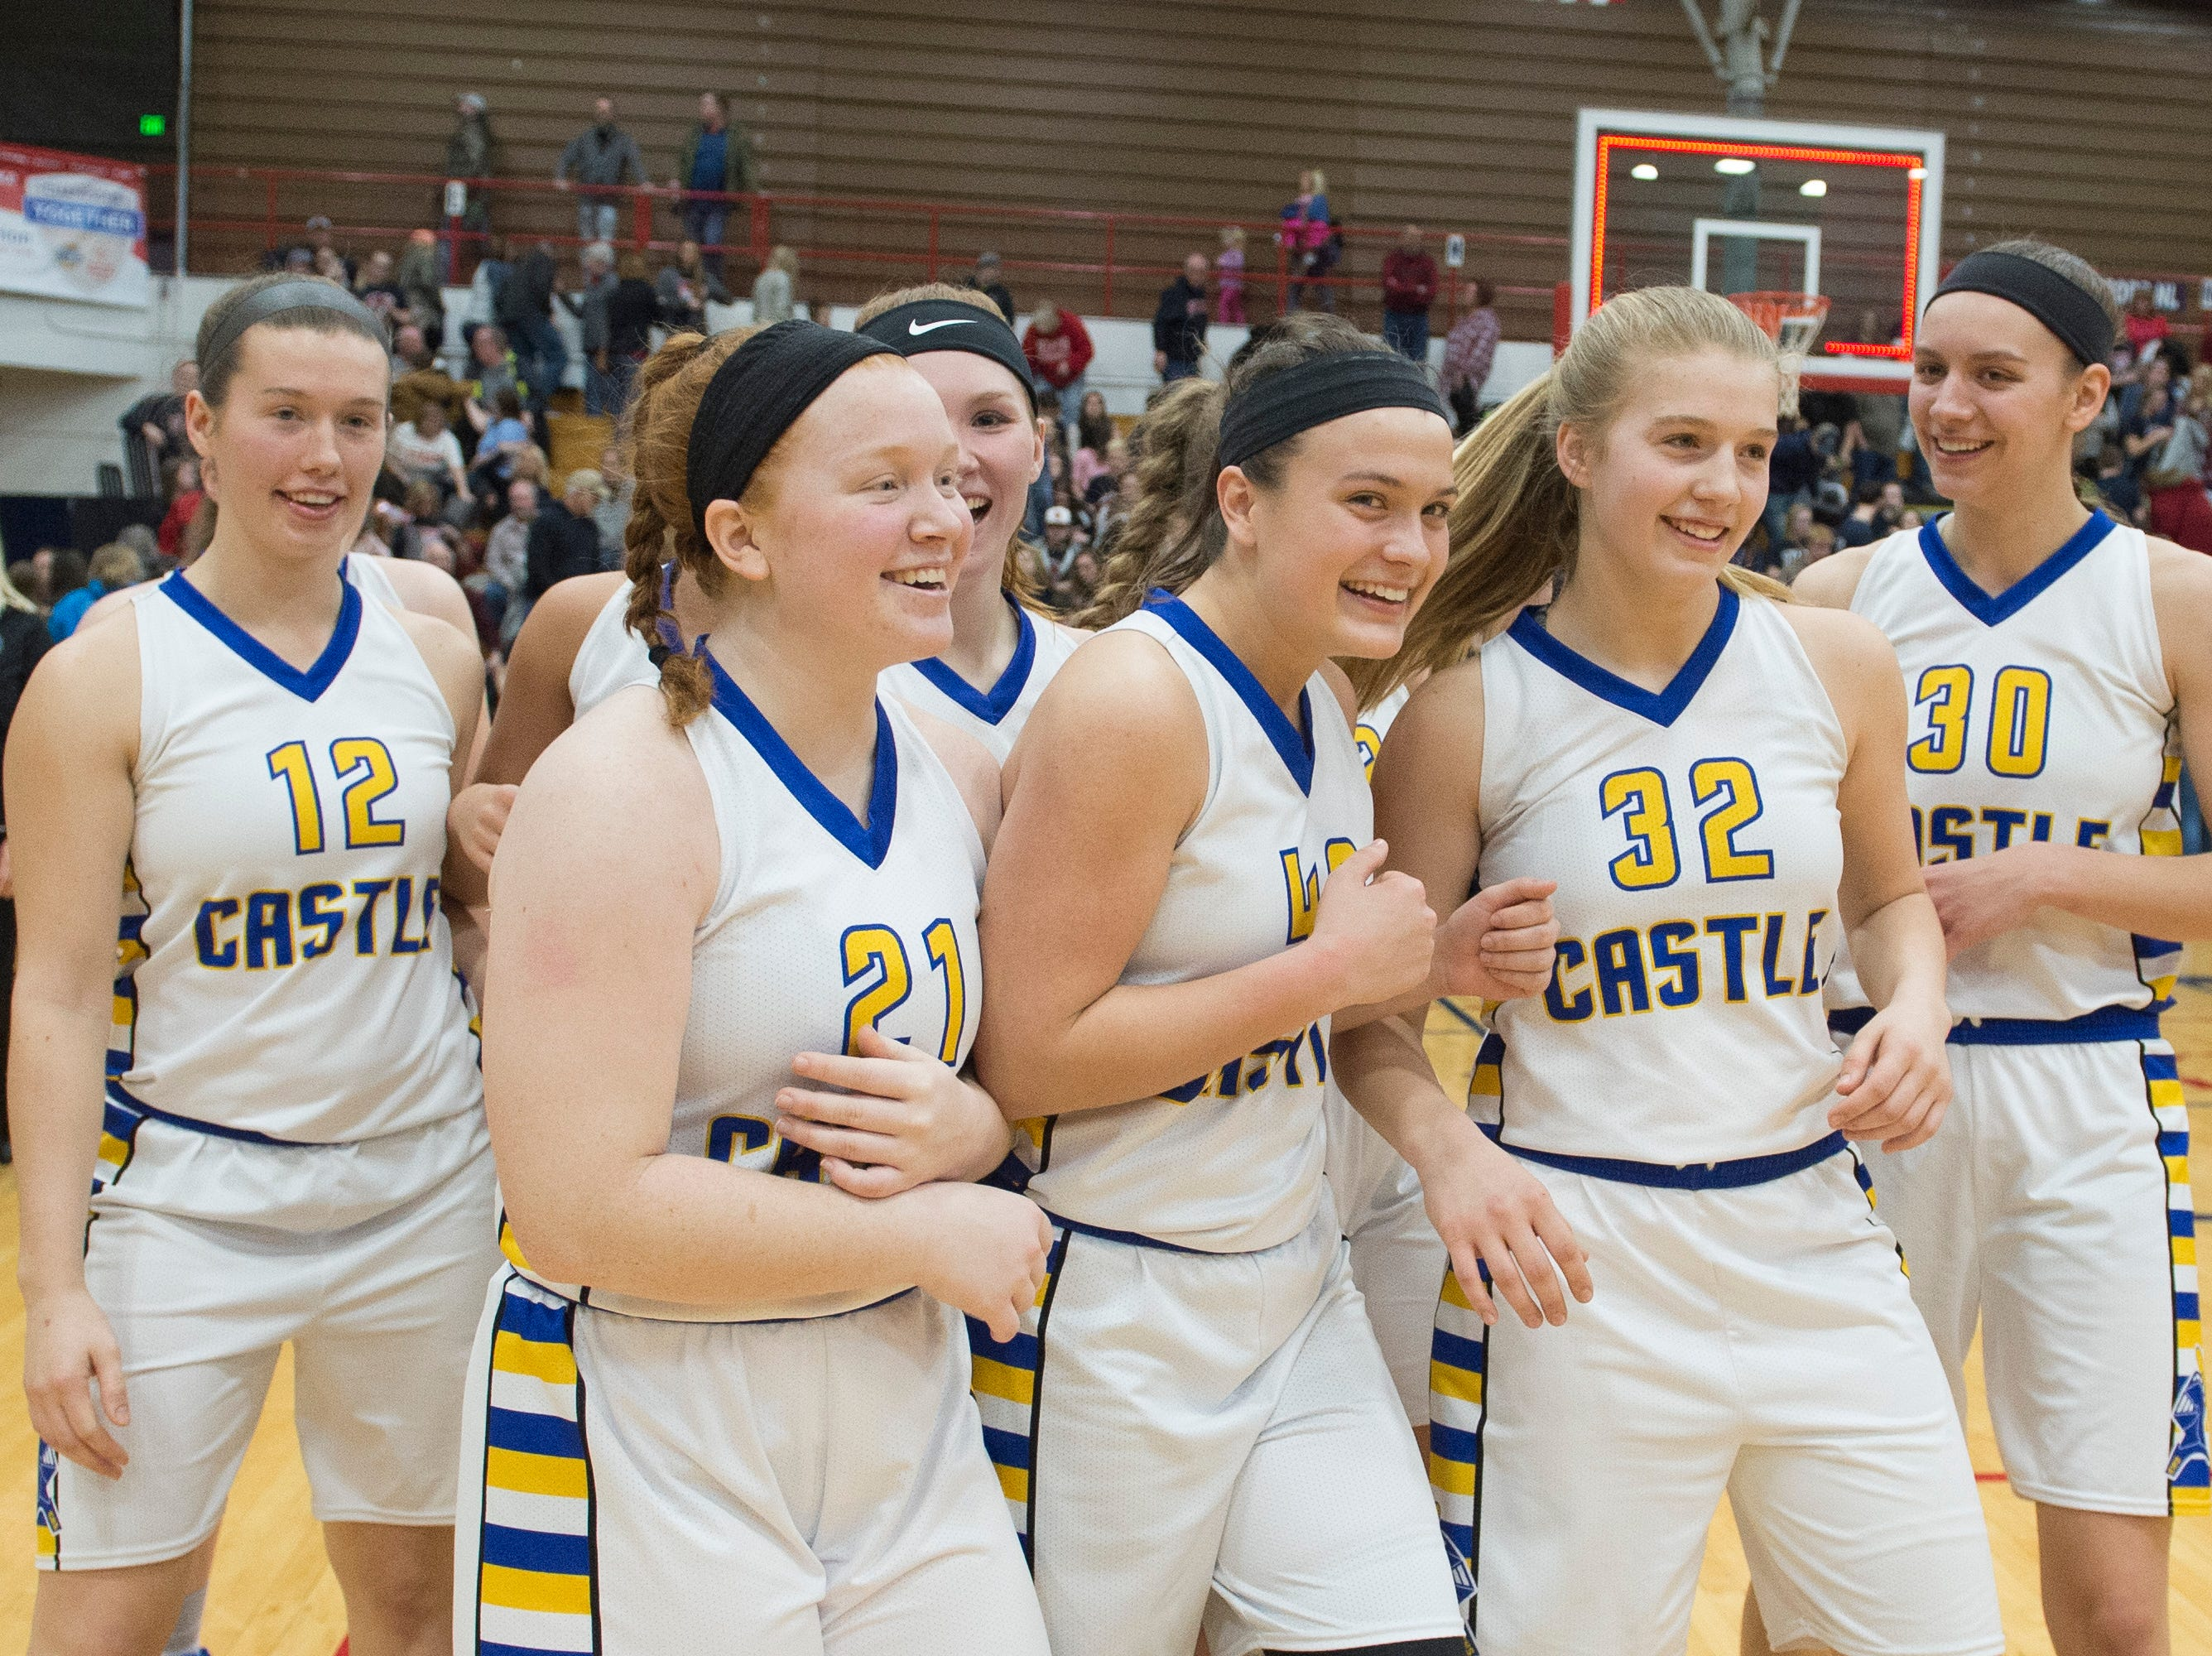 The Castle Knights gather as they celebrate their IHSAA Girls Basketball Class 4A Regional Championship game win over the Bedford North Lawrence Lady Stars at the Stars Field House in Bedford, Ind. Saturday, Feb. 9, 2019.